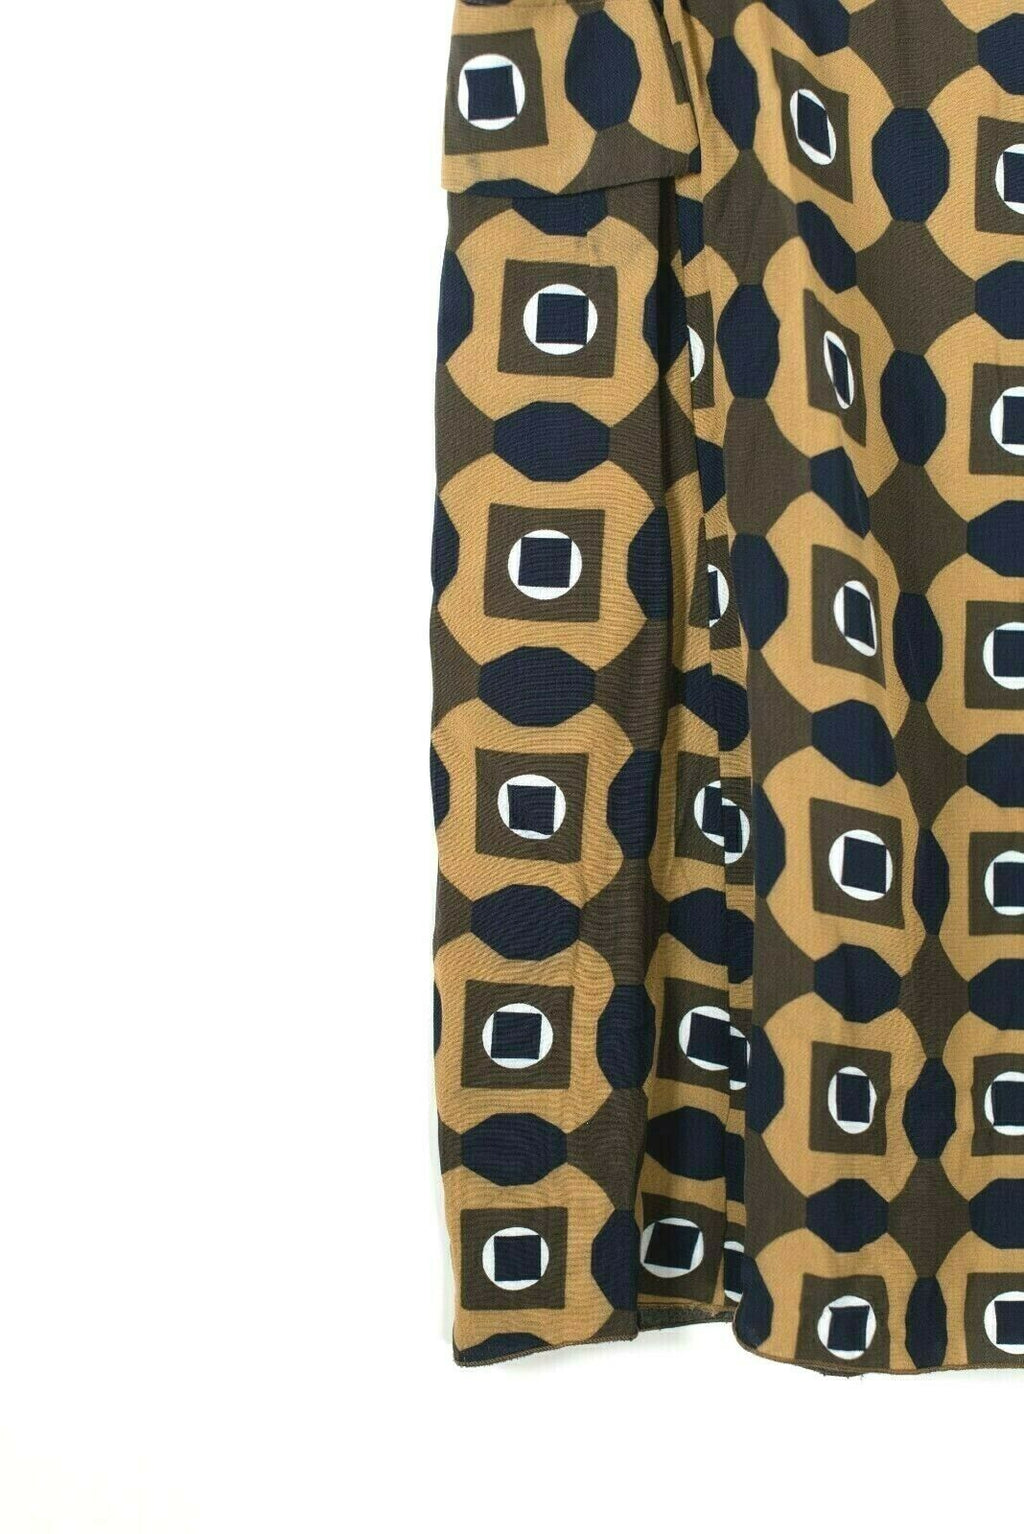 Marni Womens Size 40 Small 4 Brown Blue Mini Skirt Geometric Print Side Pockets